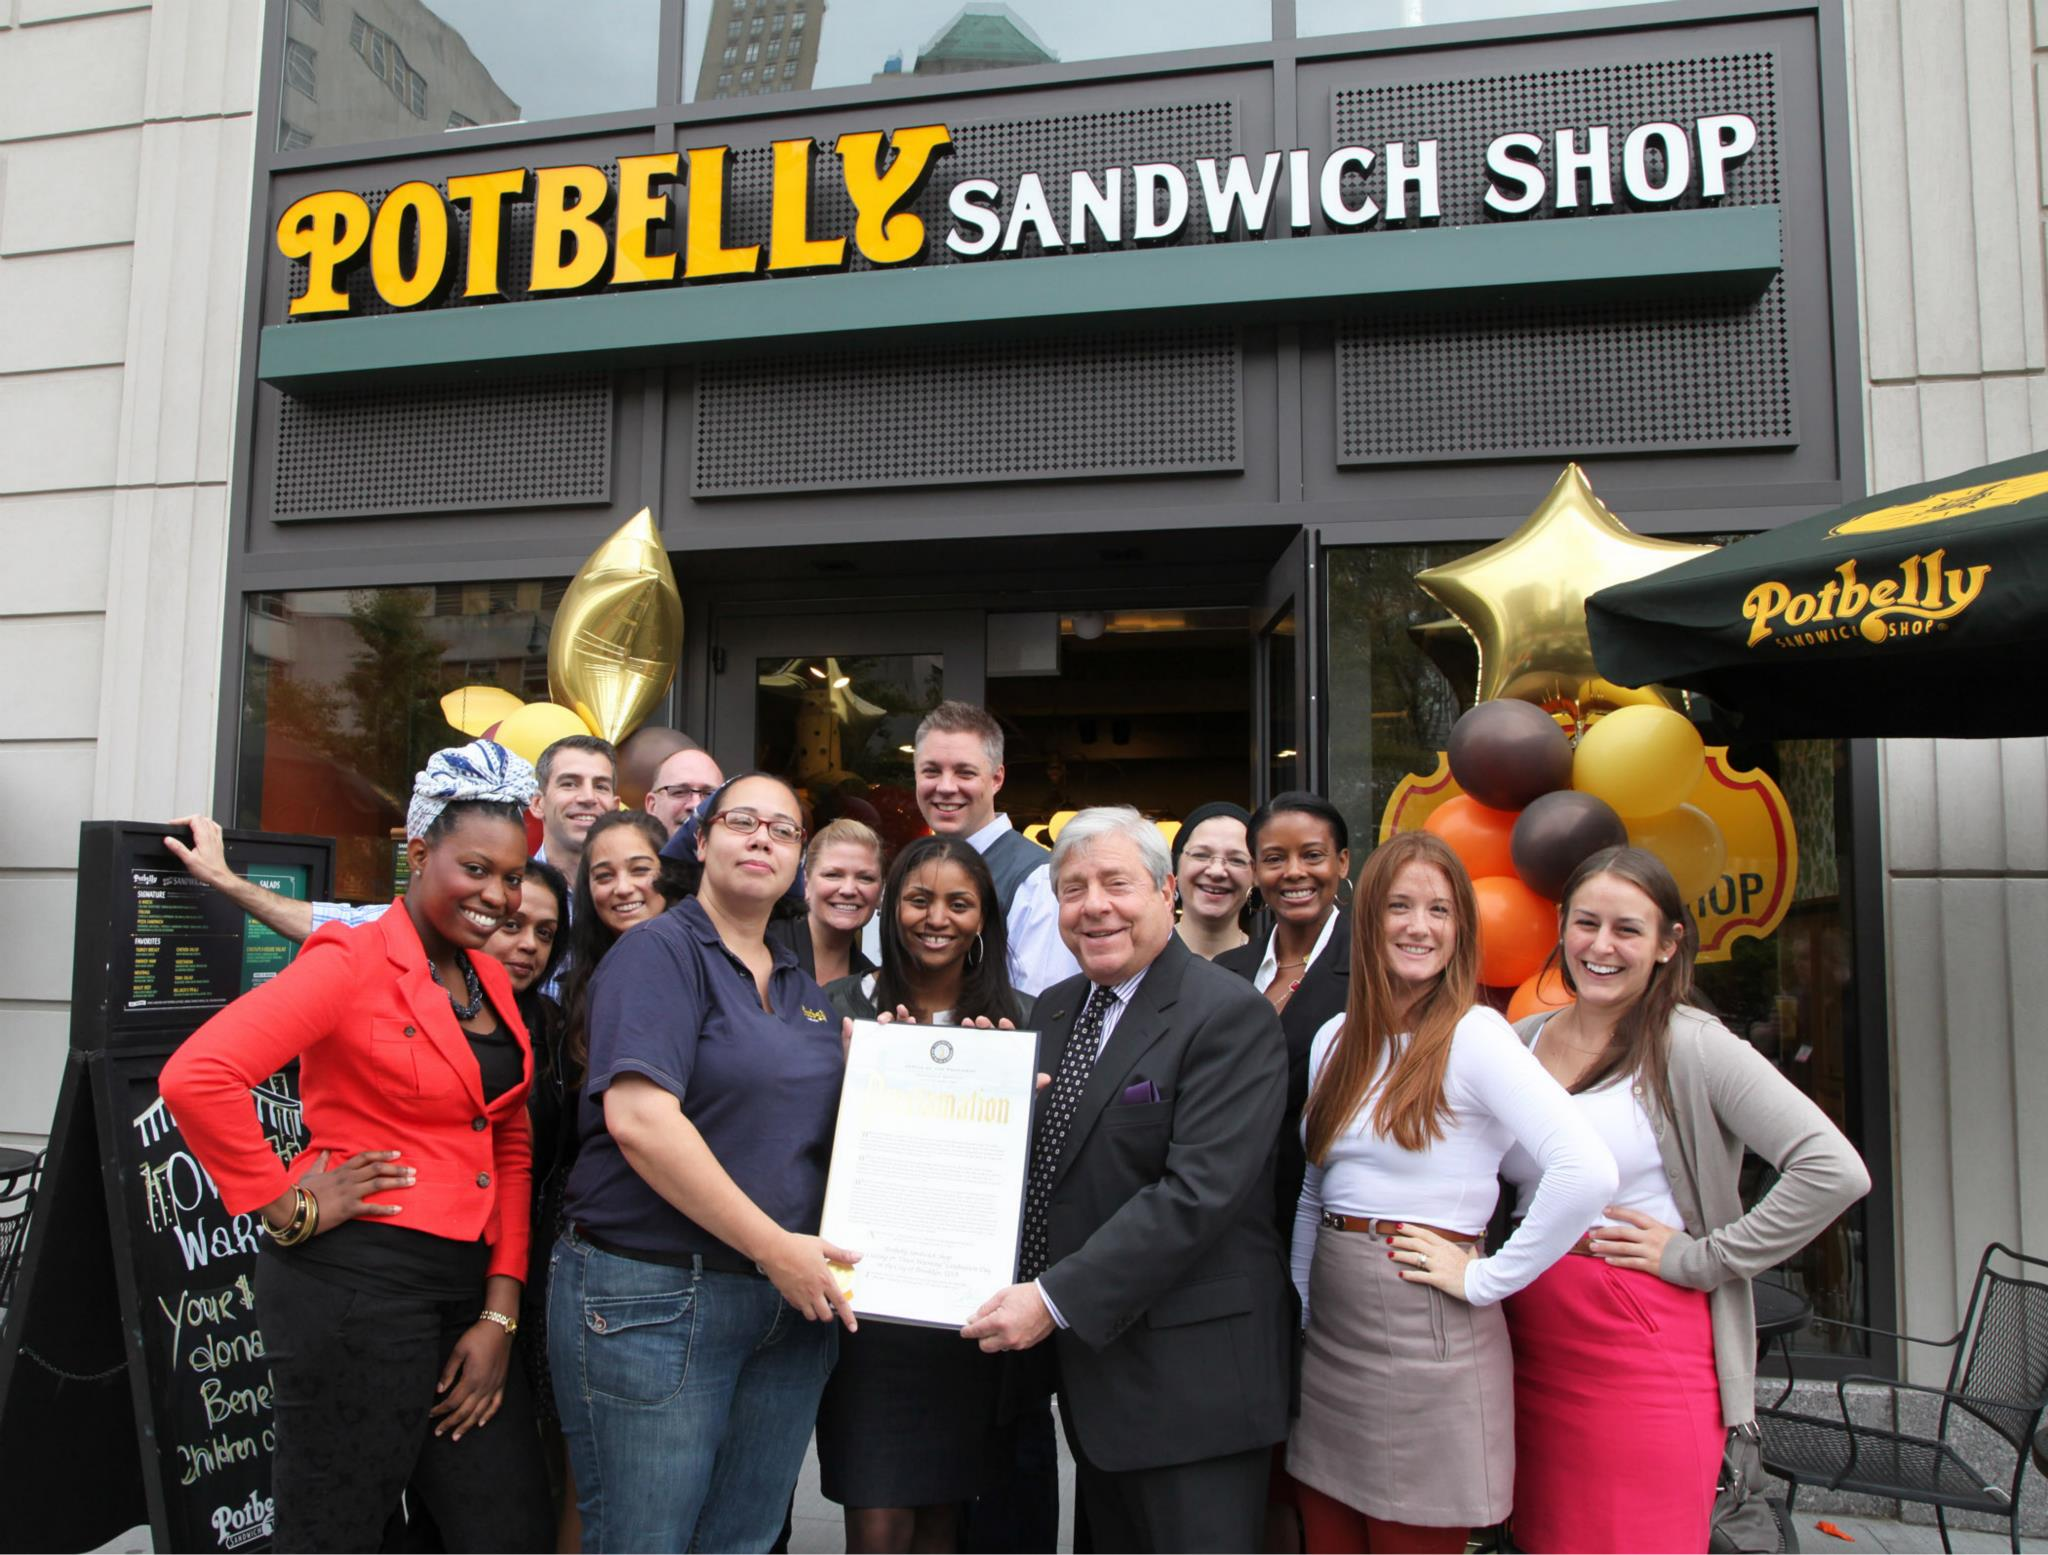 Potbelly Picture